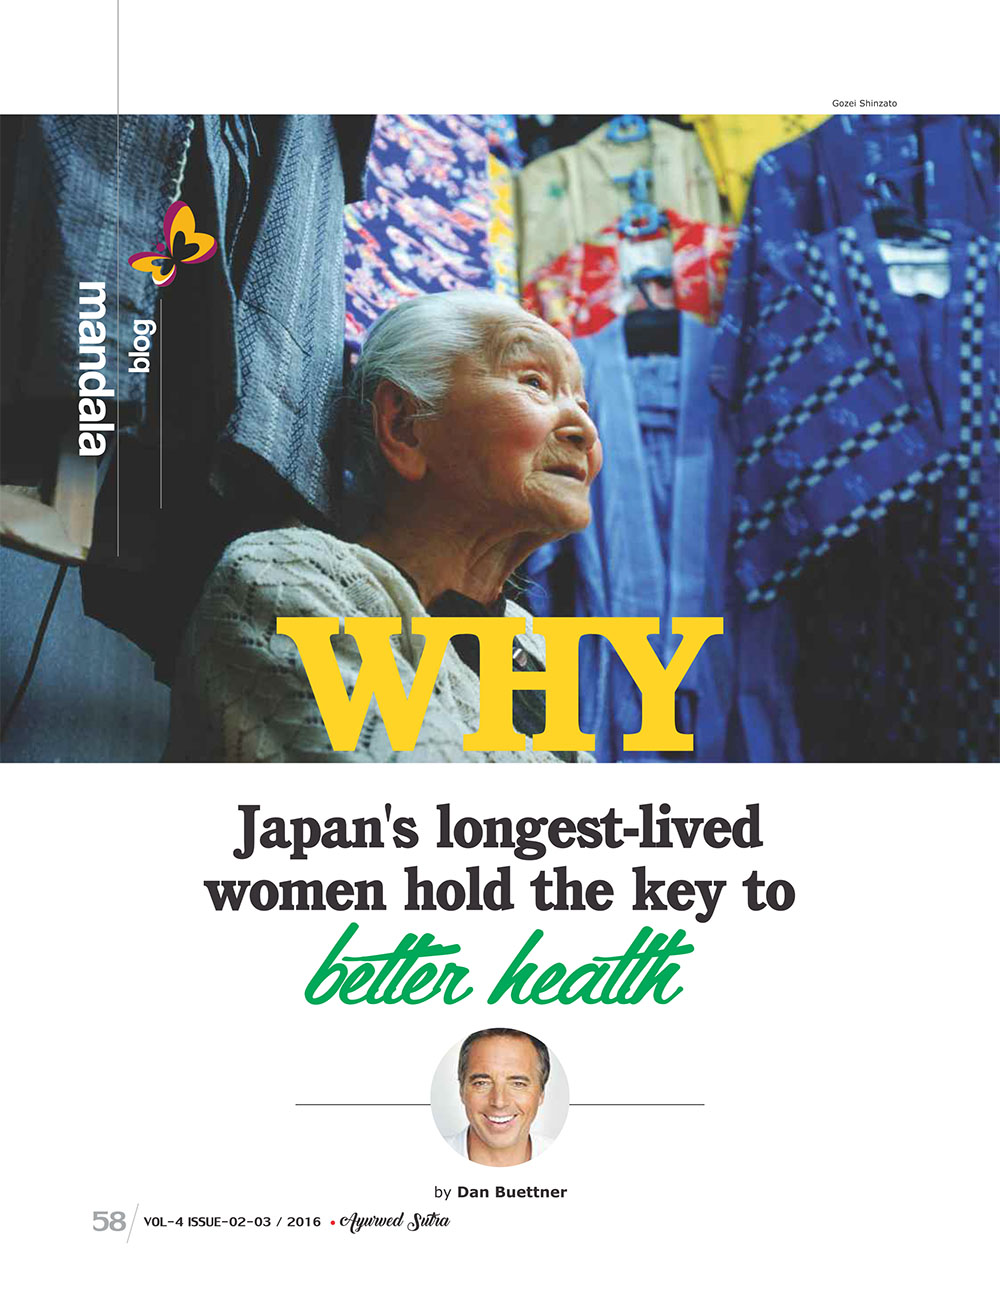 Ayurvedsutra Vol 04 issue 0203 60 - Why Japan's longest-lived women hold the key to better health